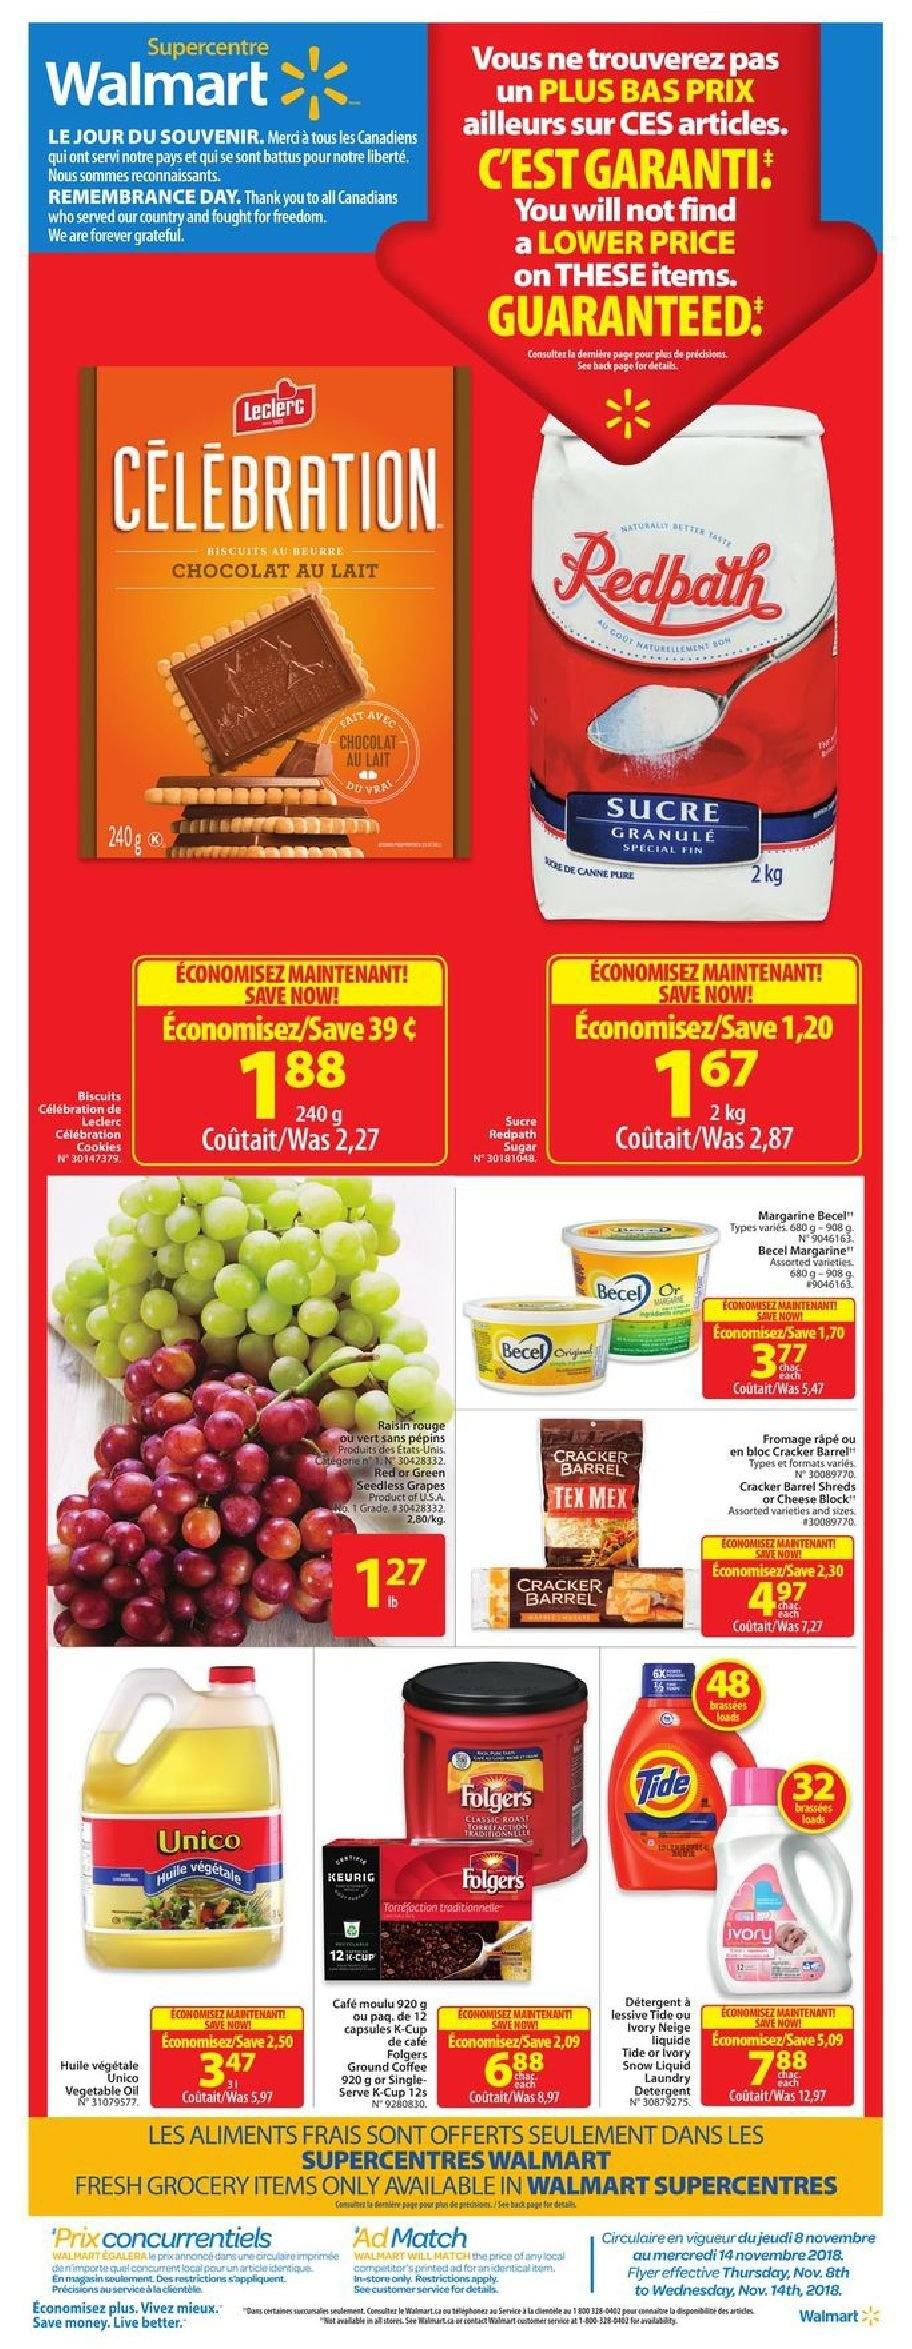 Walmart Flyer - November 08, 2018 - November 14, 2018 - Sales products - coffee, cup, forever, grapes, margarine, seedless grapes, tide, cheese, cracker, chocolat, lait, cafe, bloc, café moulu, fromage, huile, sucre, neige, lessive, râpé. Page 1.